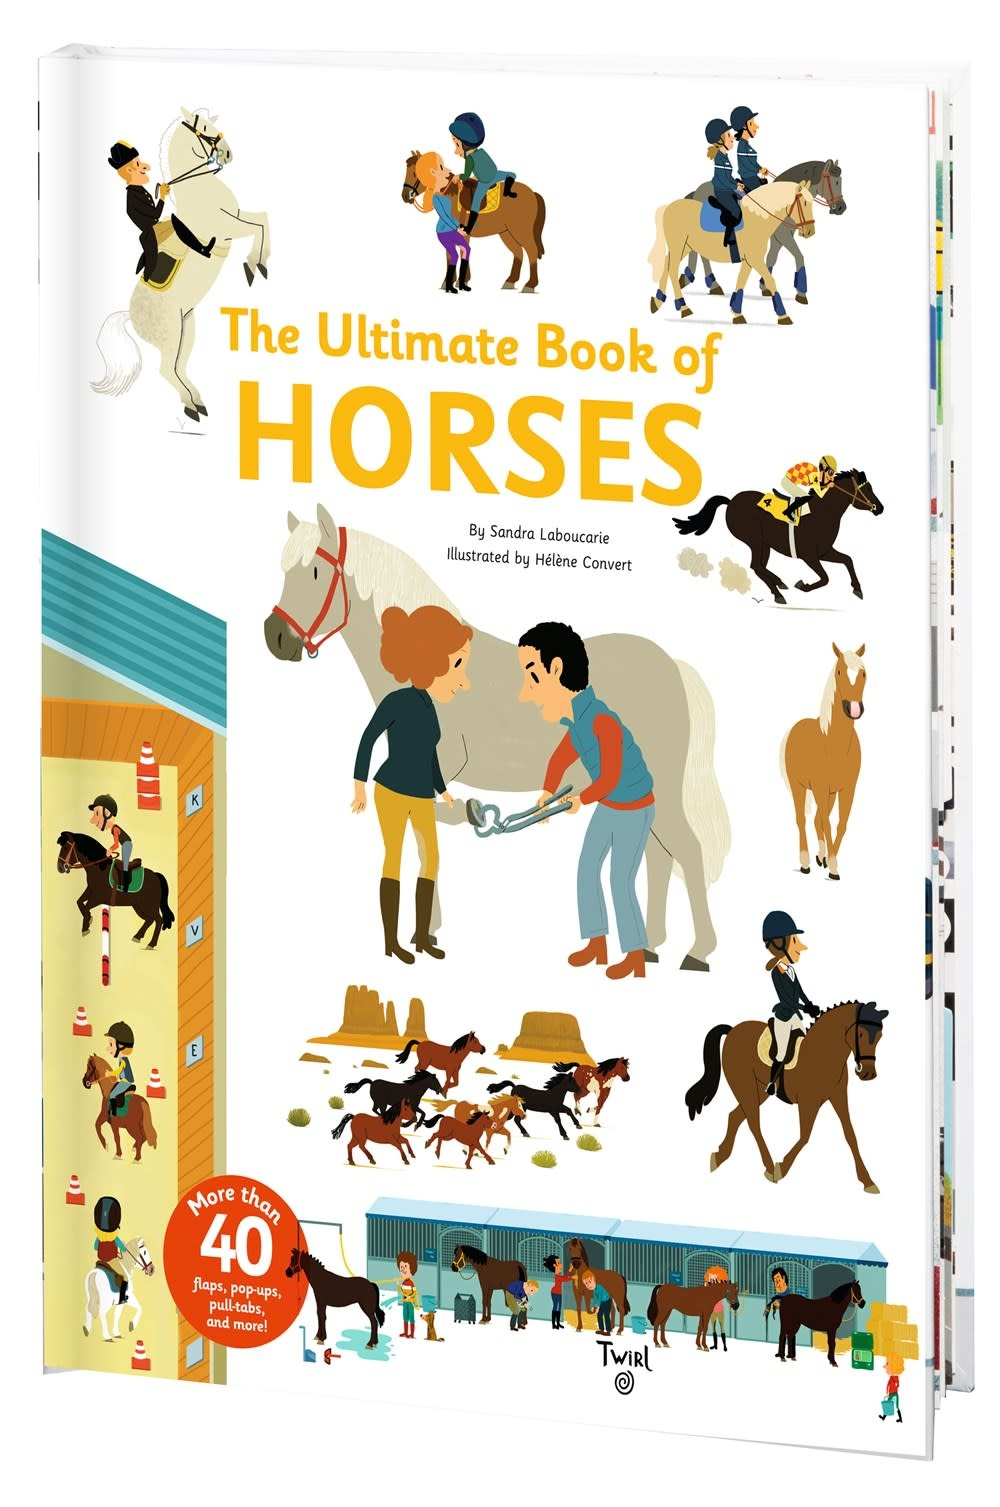 Twirl The Ultimate Book of Horses